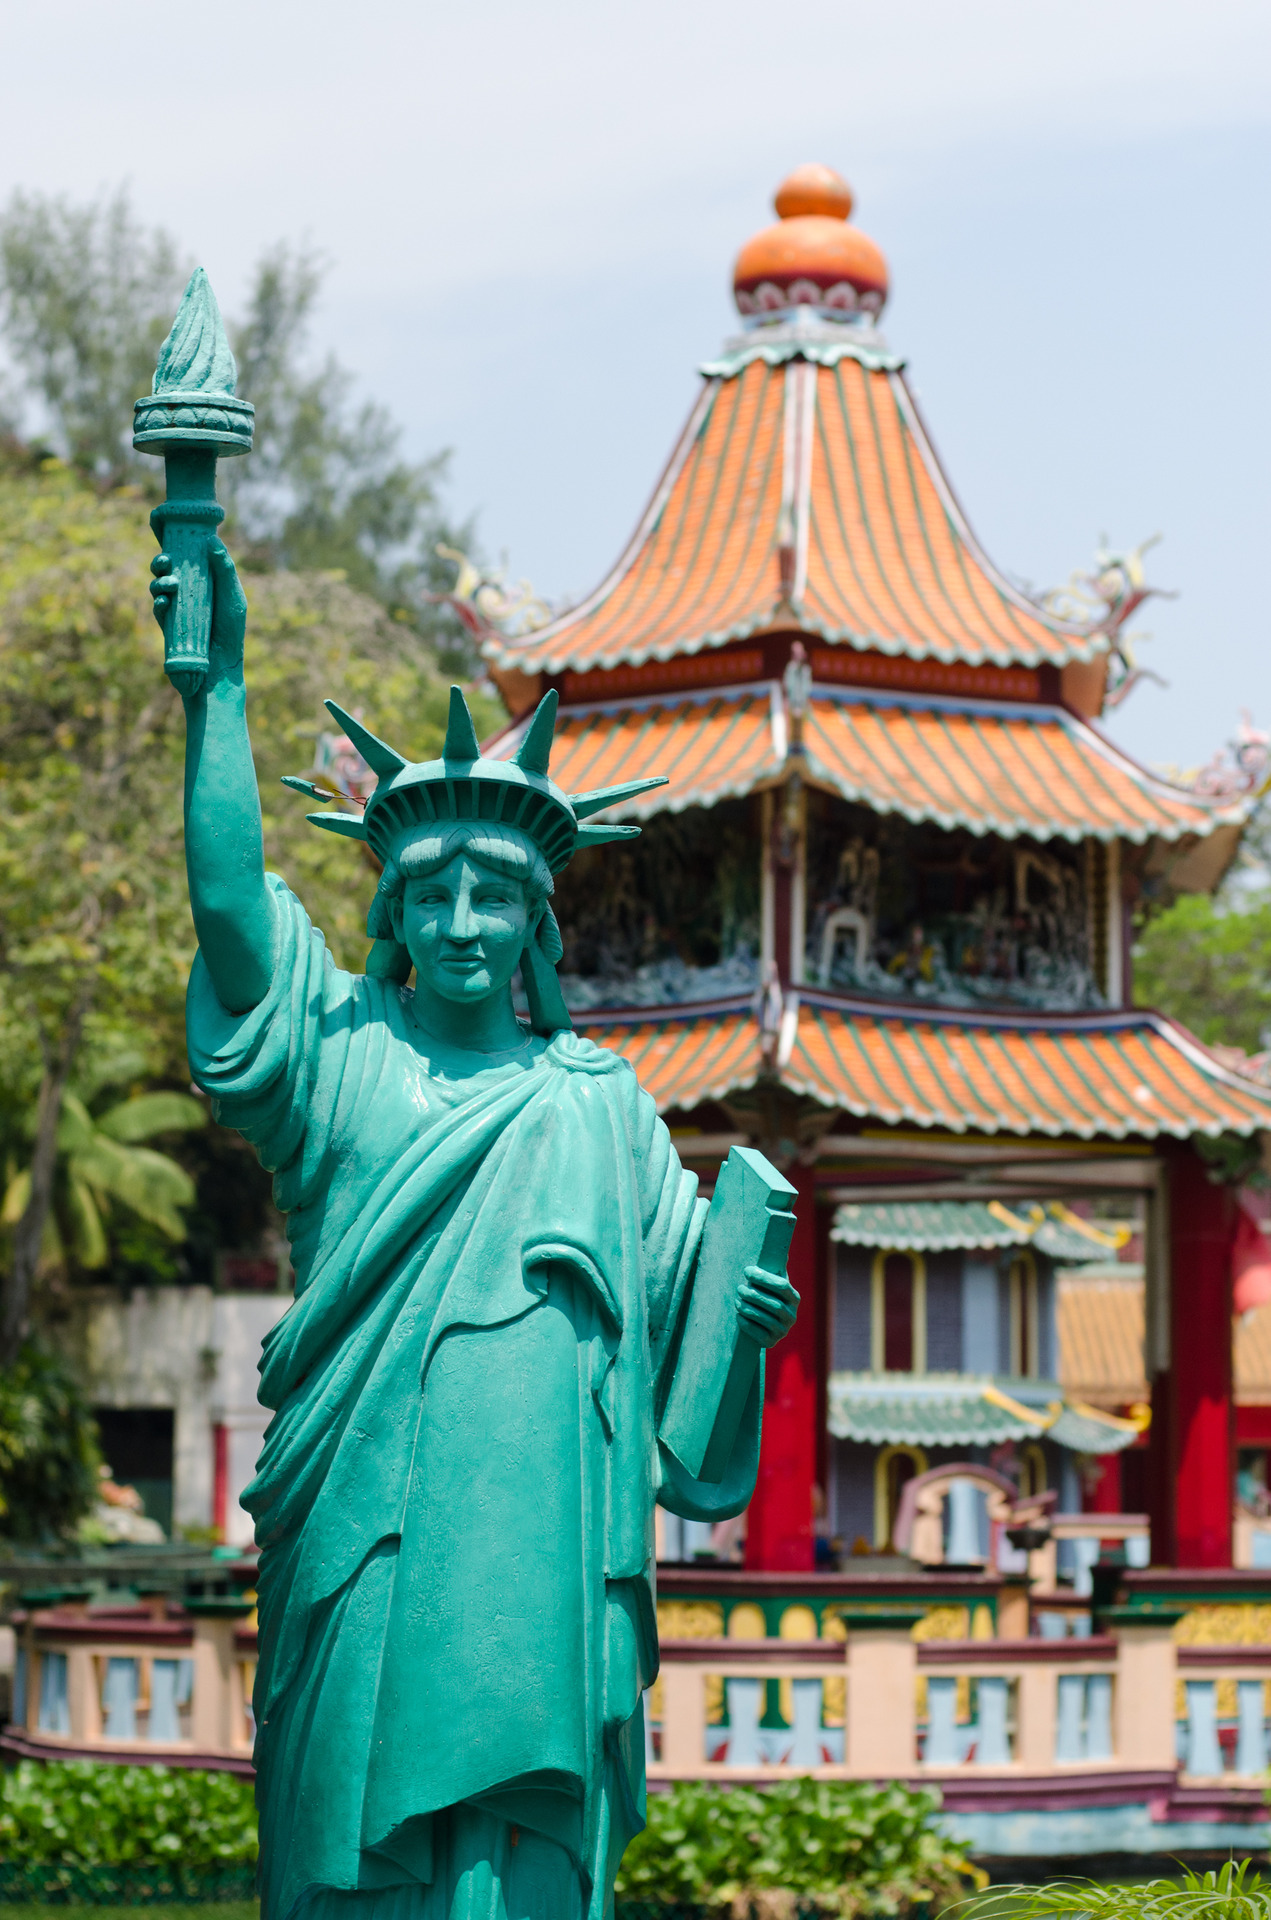 Apparently even Lady Liberty makes an appearance in Chinese Mythology.